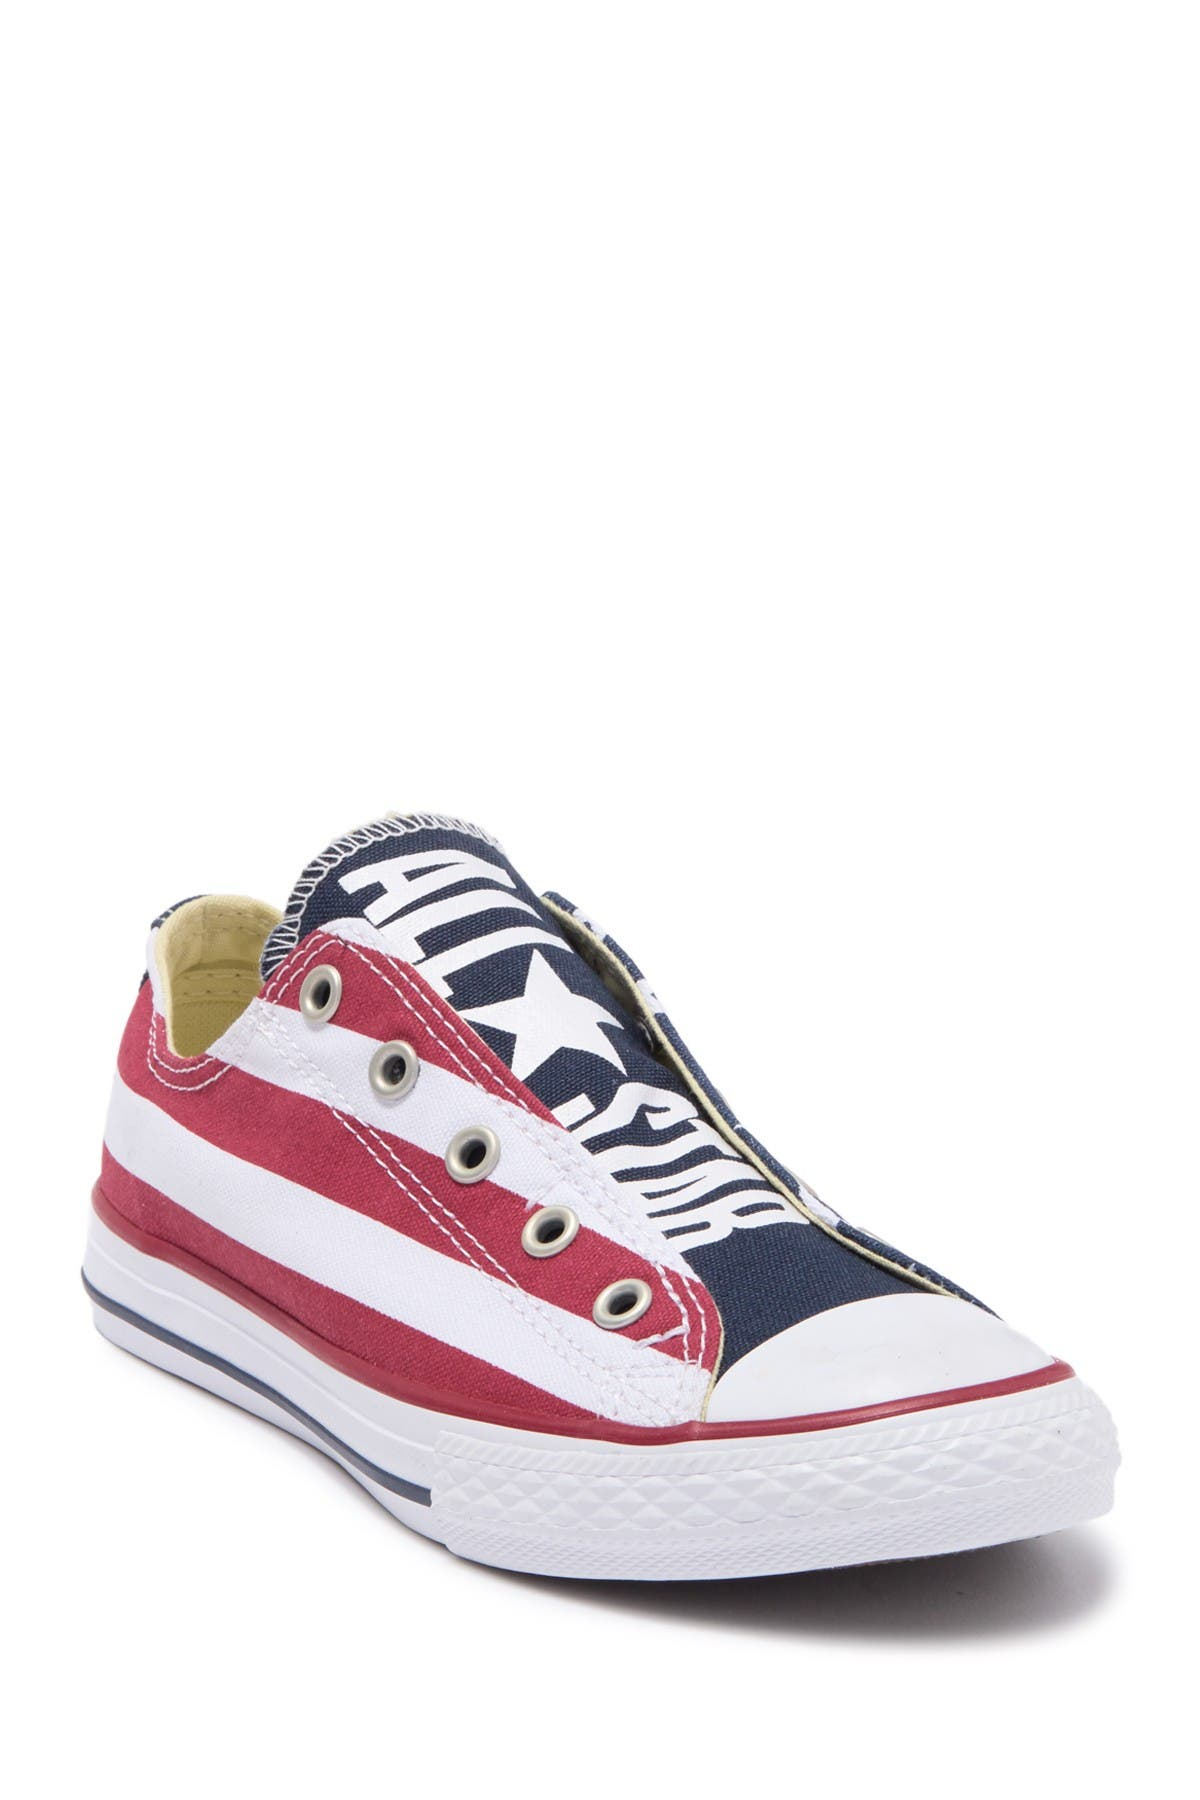 Image of Converse Chuck Taylor All Start Flag Print Laceless Sneaker